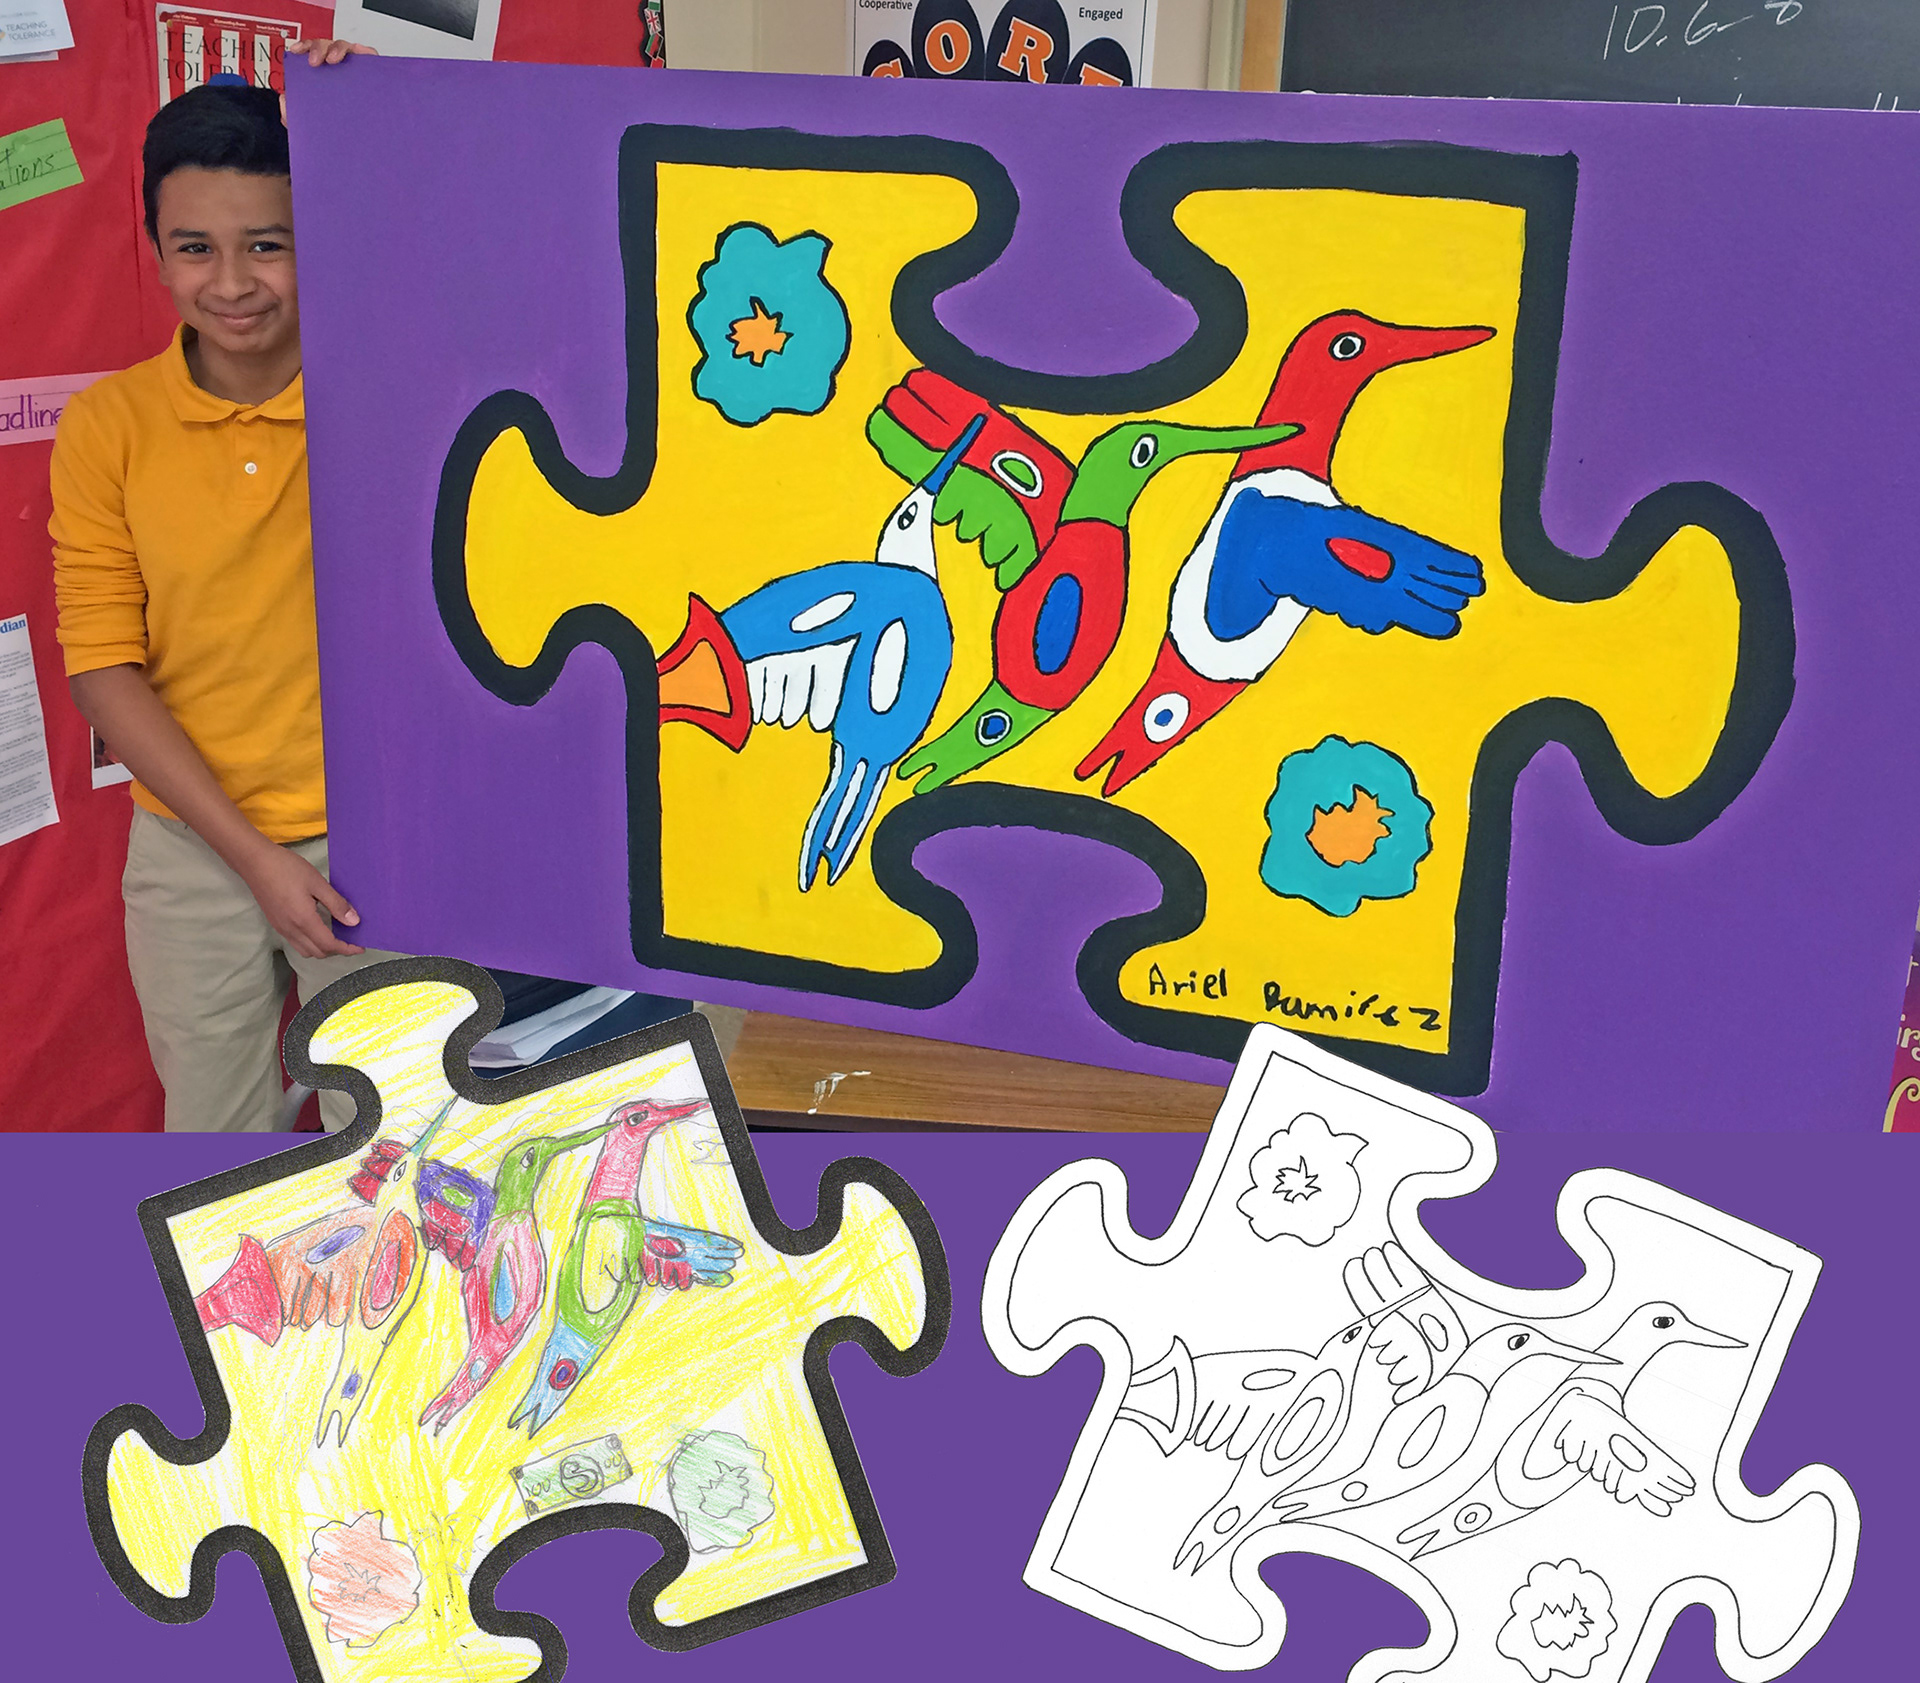 We All Fit Together Uses The Template Of A Puzzle Piece As Starting Point To Explore Issues Diversity And Inclusiveness